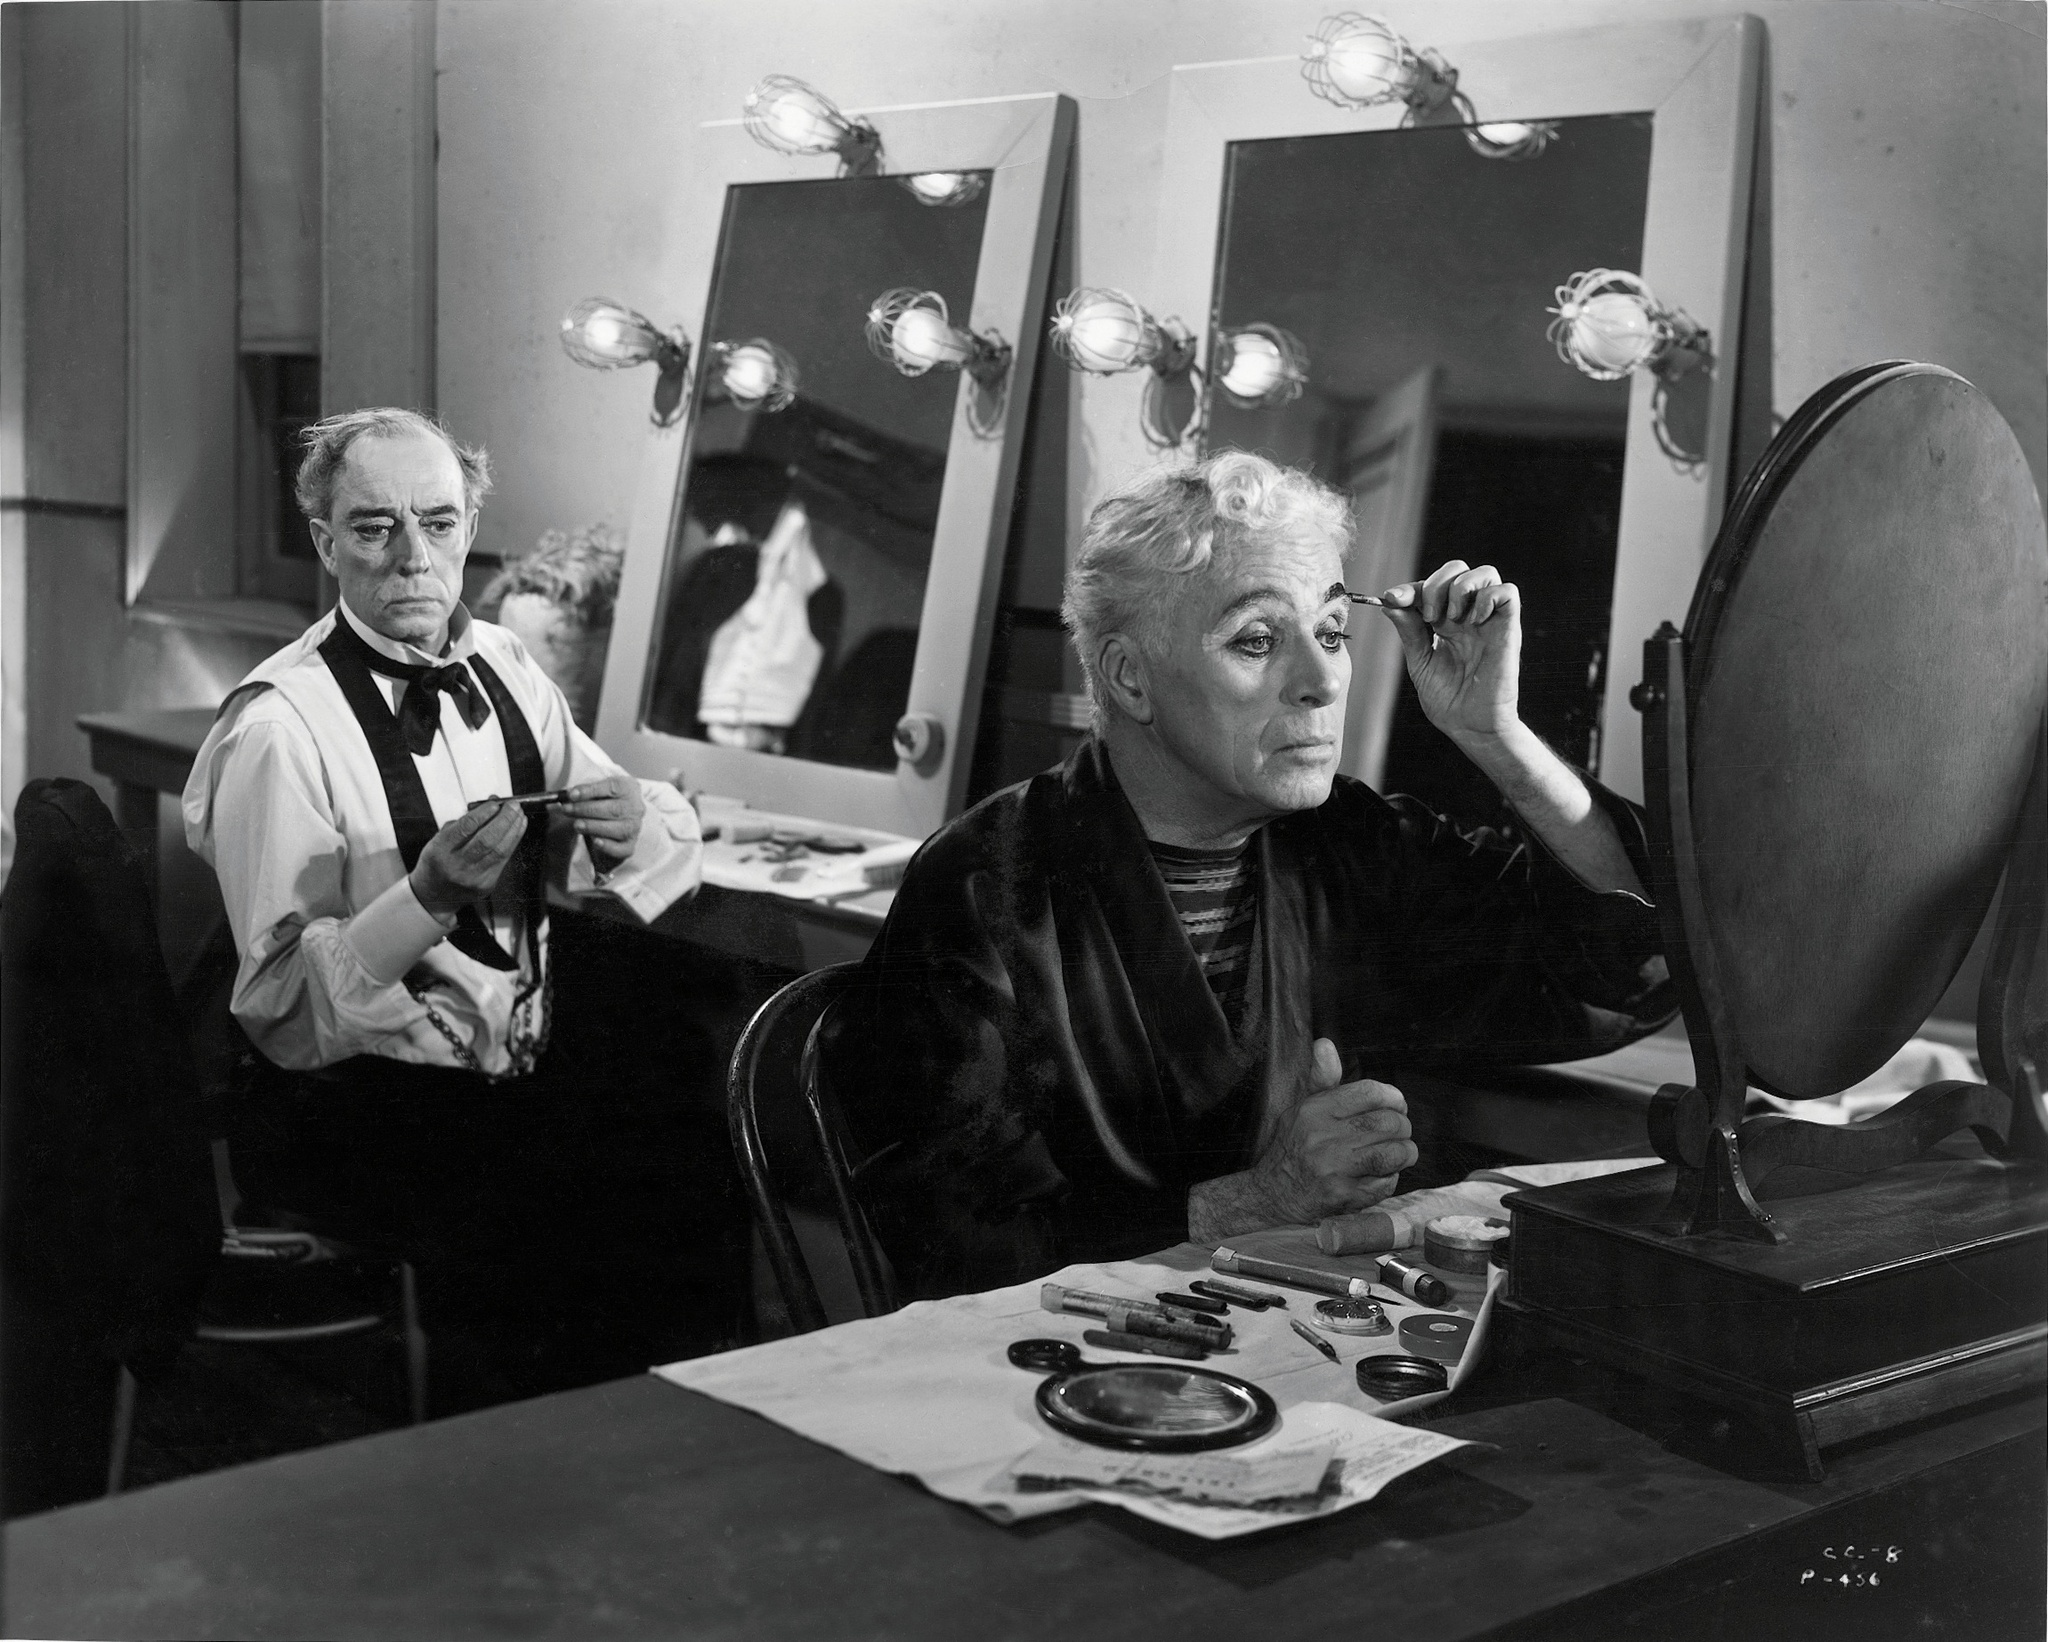 Still of Buster Keaton and Charles Chaplin in Limelight (1952)